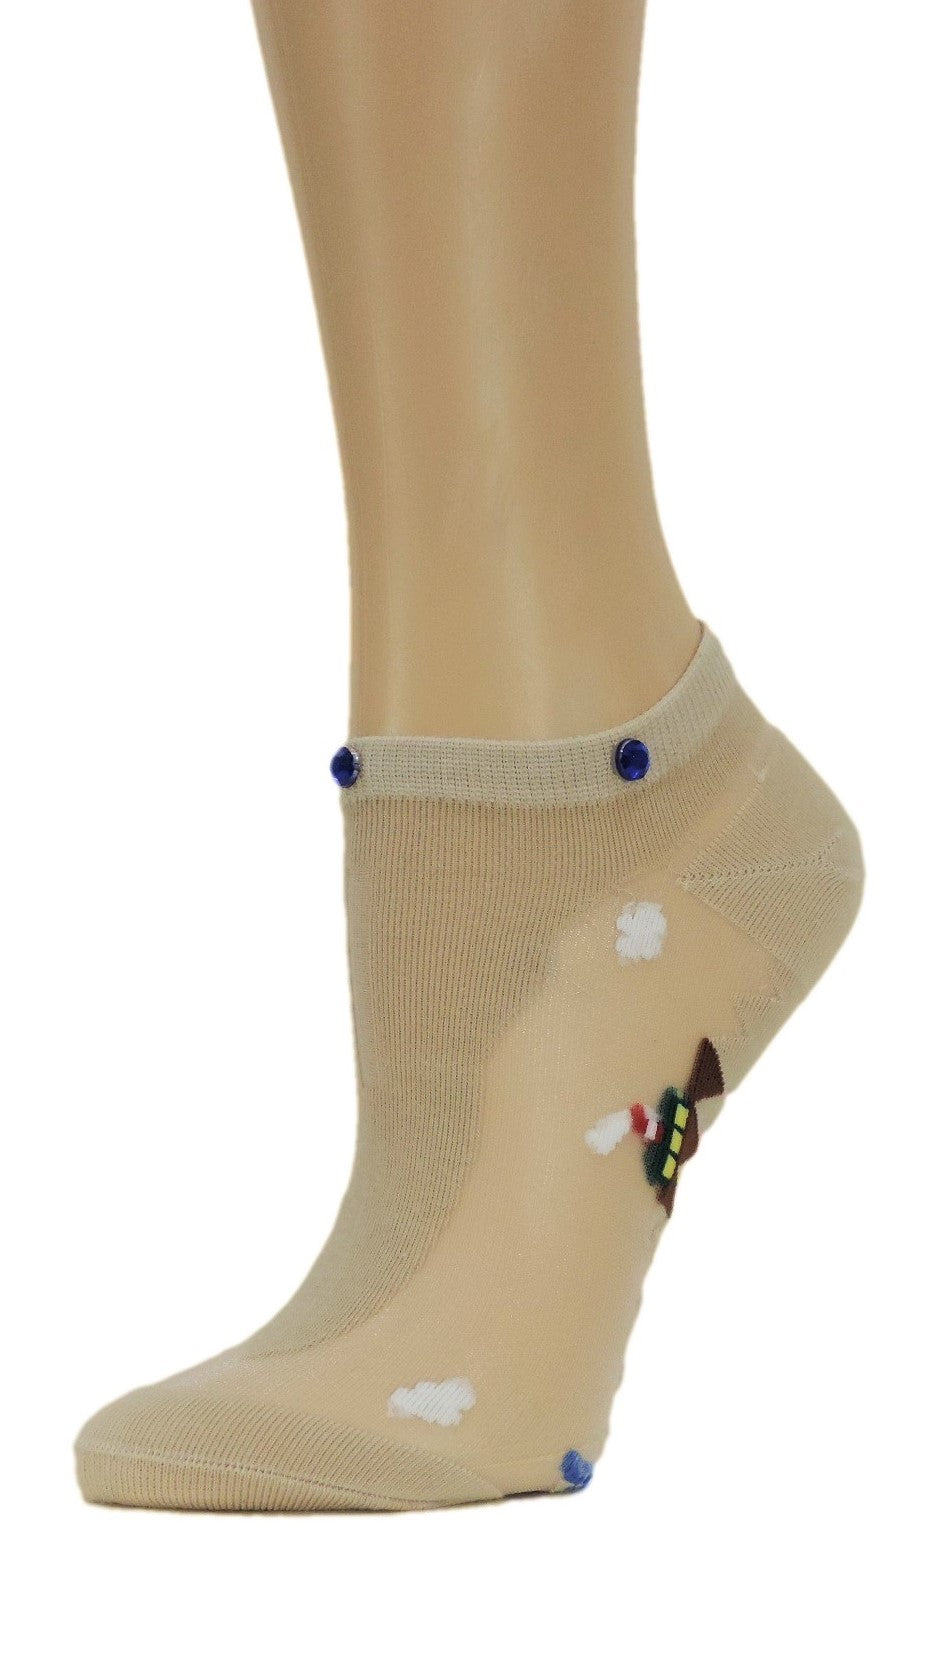 Pretty Custom Ankle Sheer Socks with beads